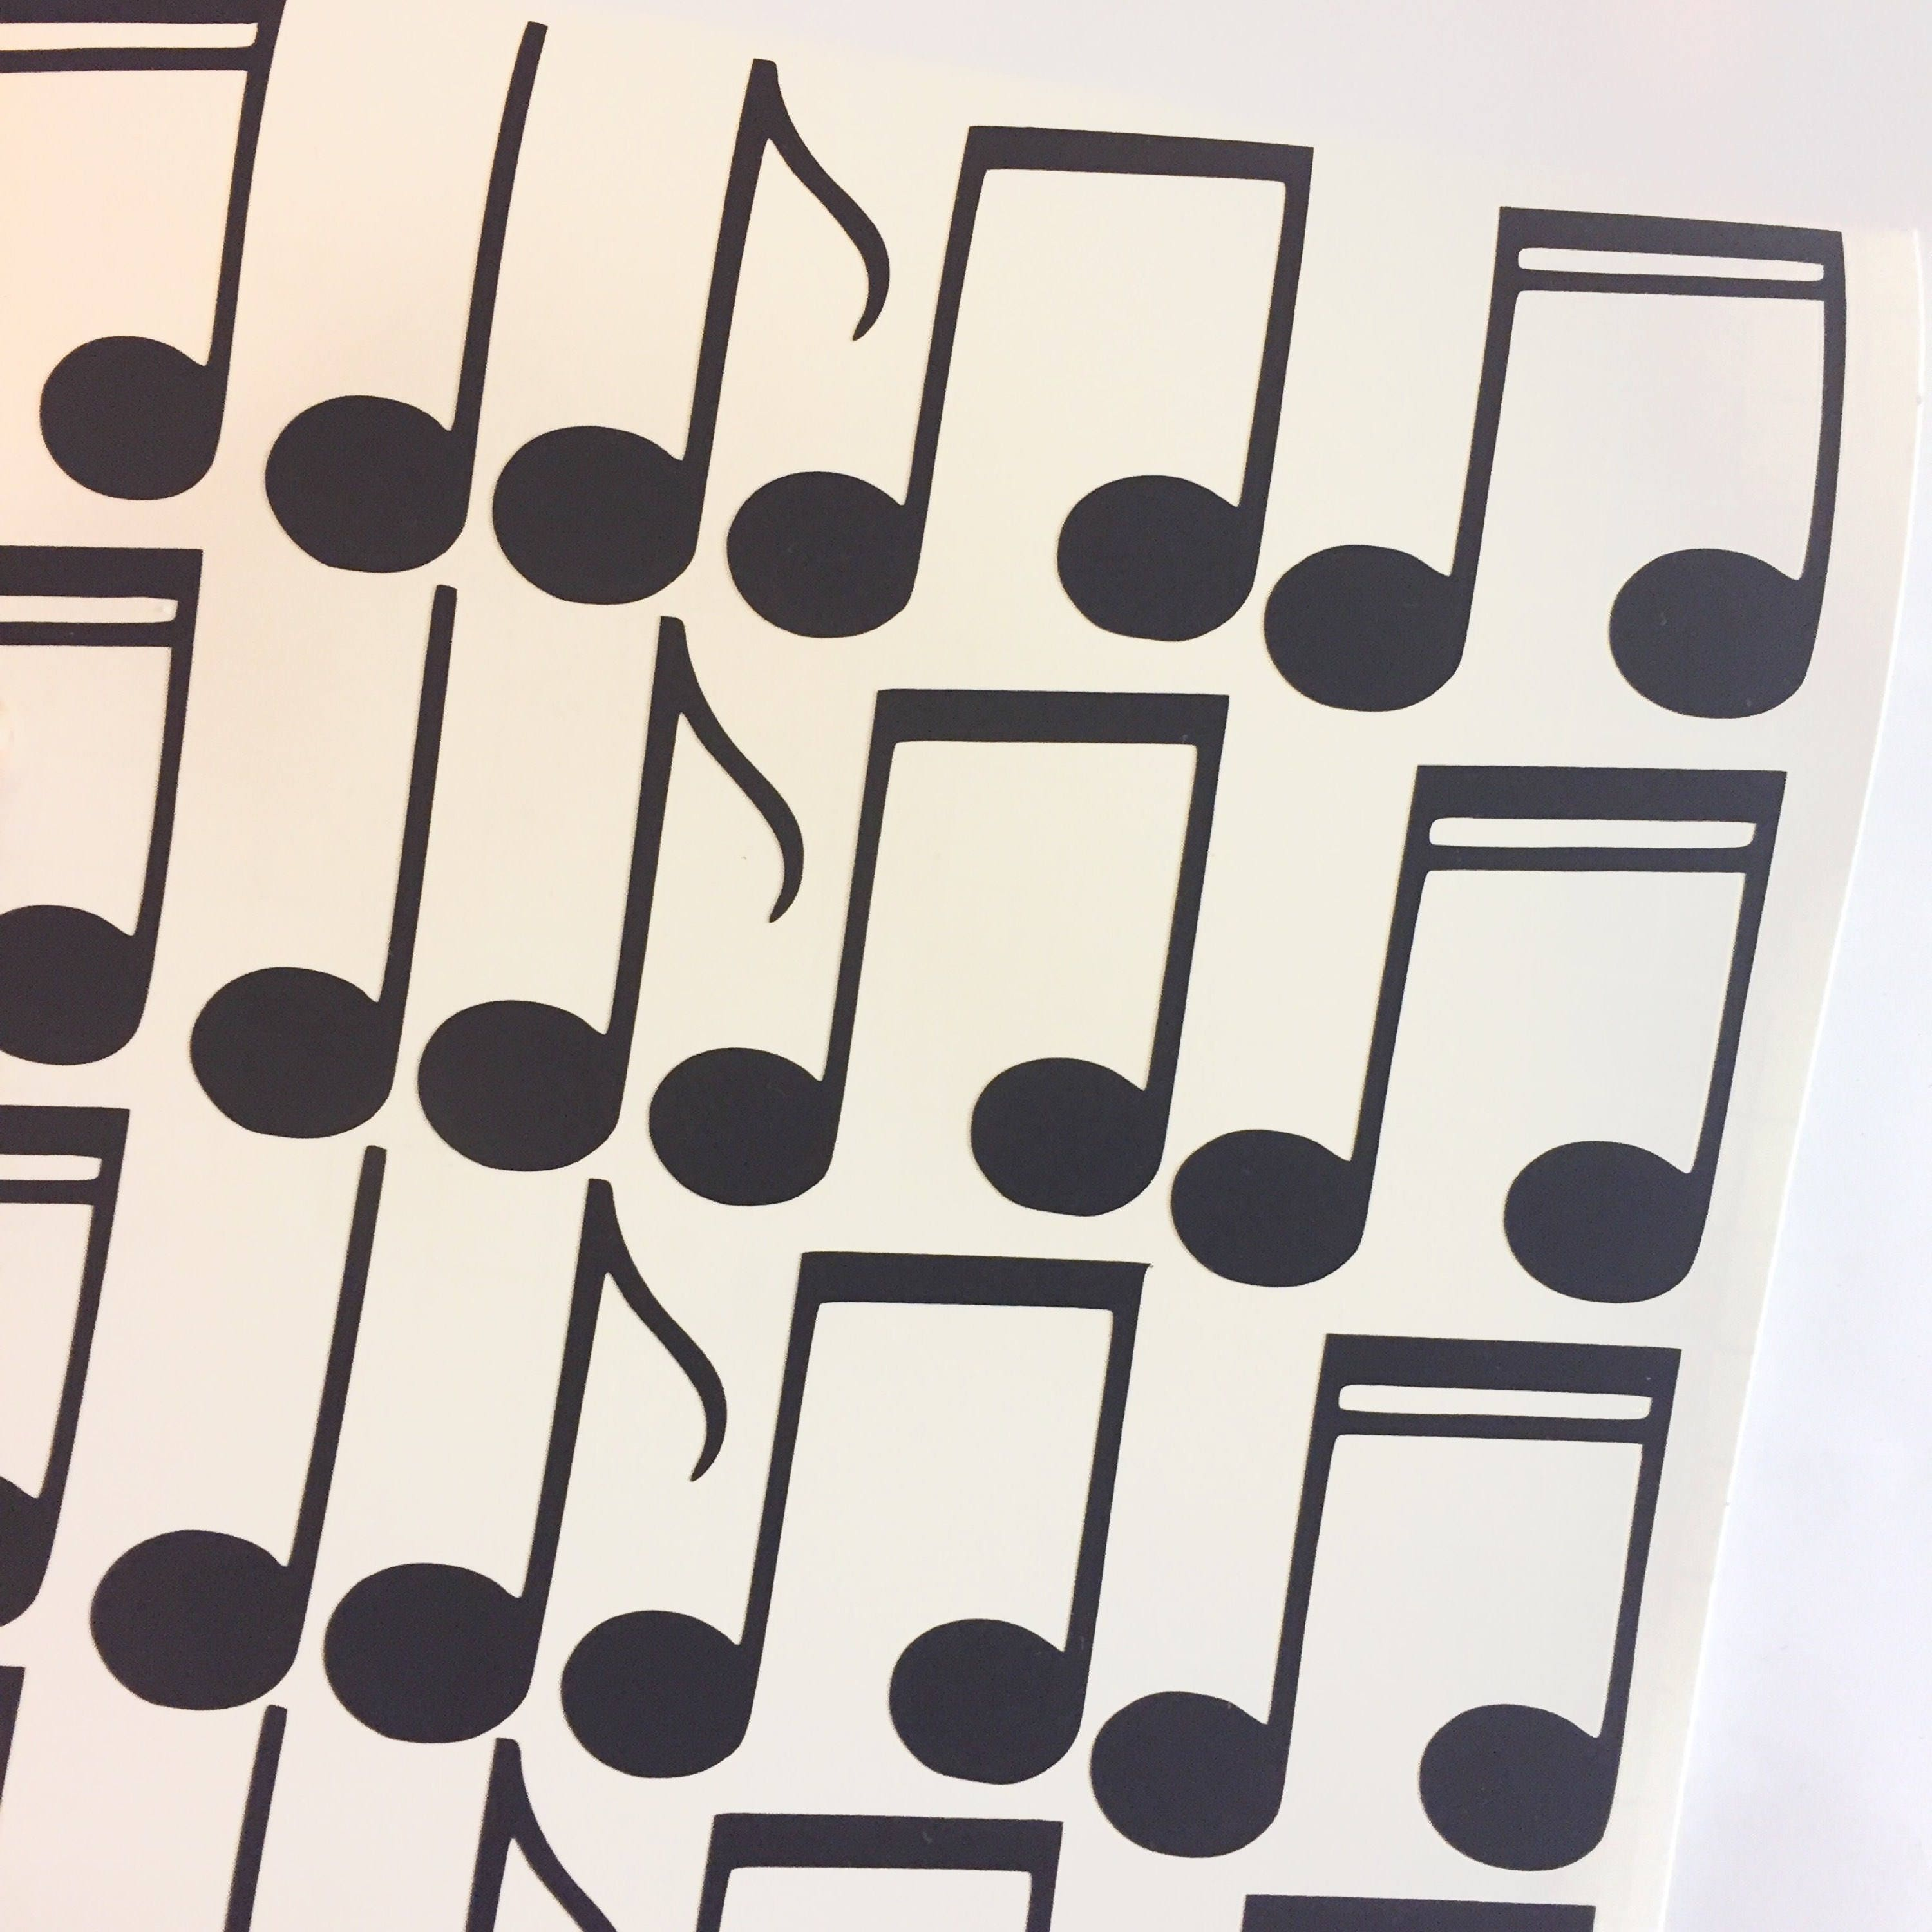 Musical notes wall decal music piano wall sticker kids nursery musical notes wall decal music piano wall sticker kids nursery decor wall pattern amipublicfo Gallery